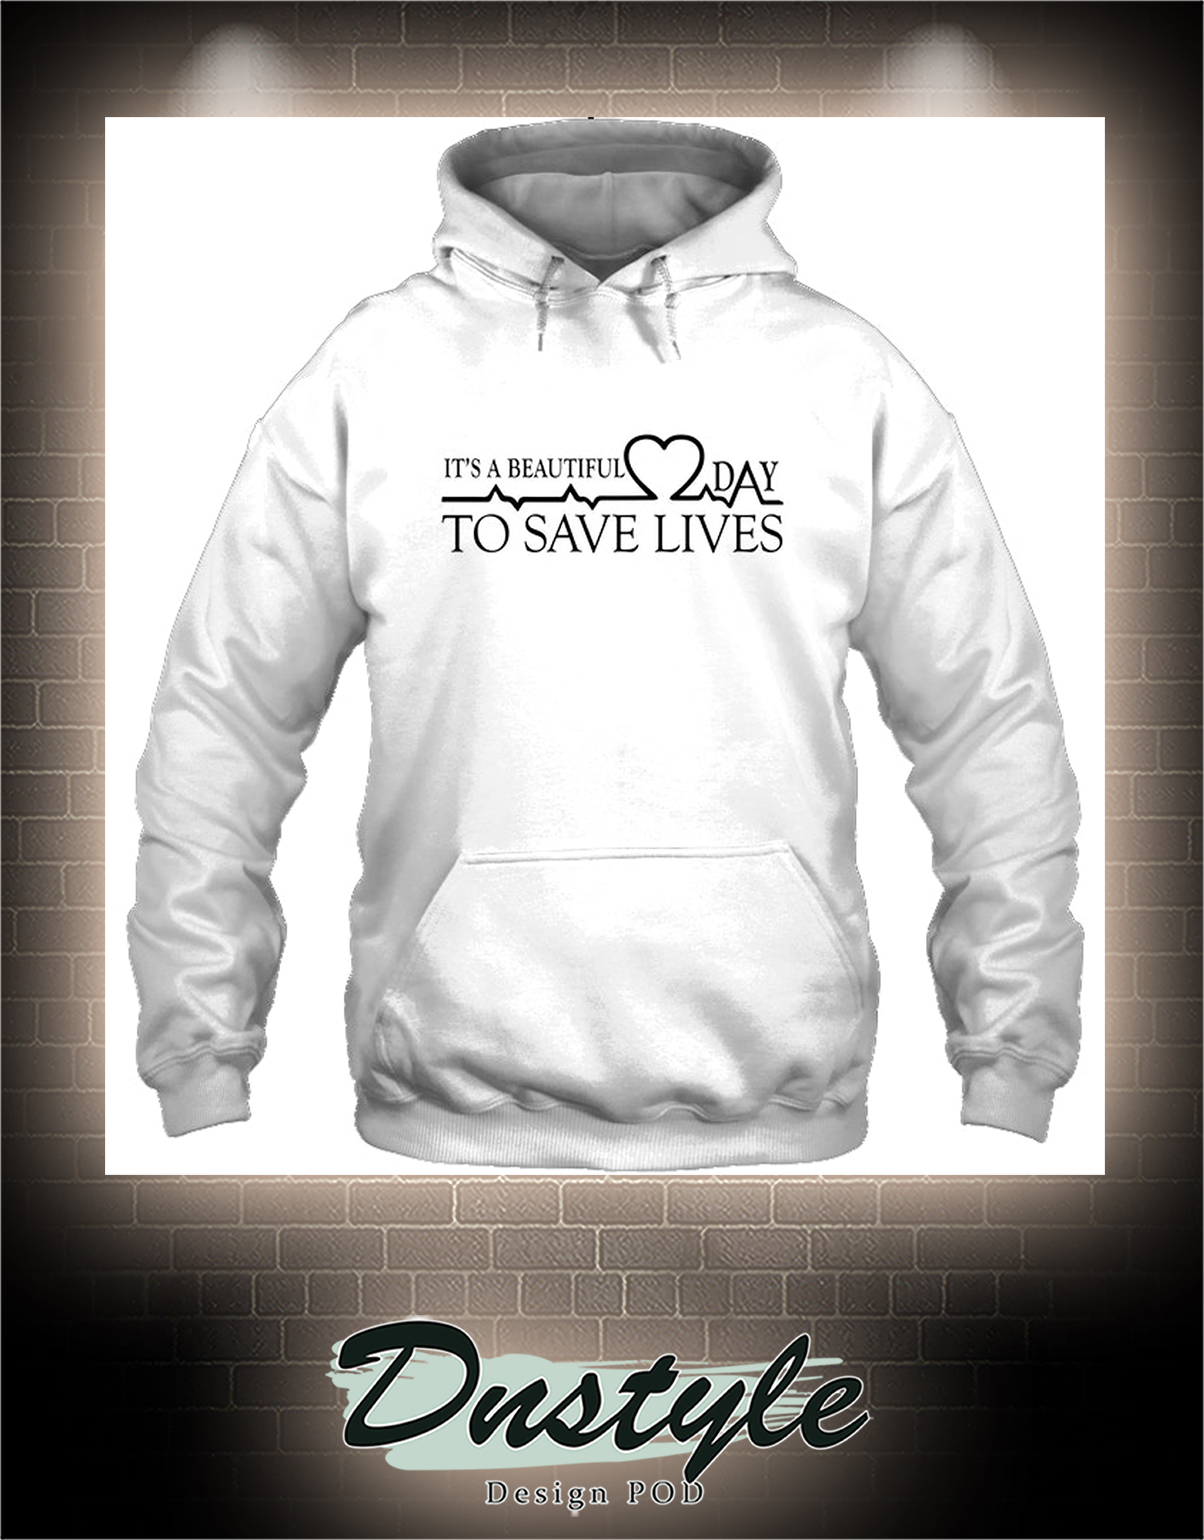 Heartbeat It's a beautiful day to save lives hoodie